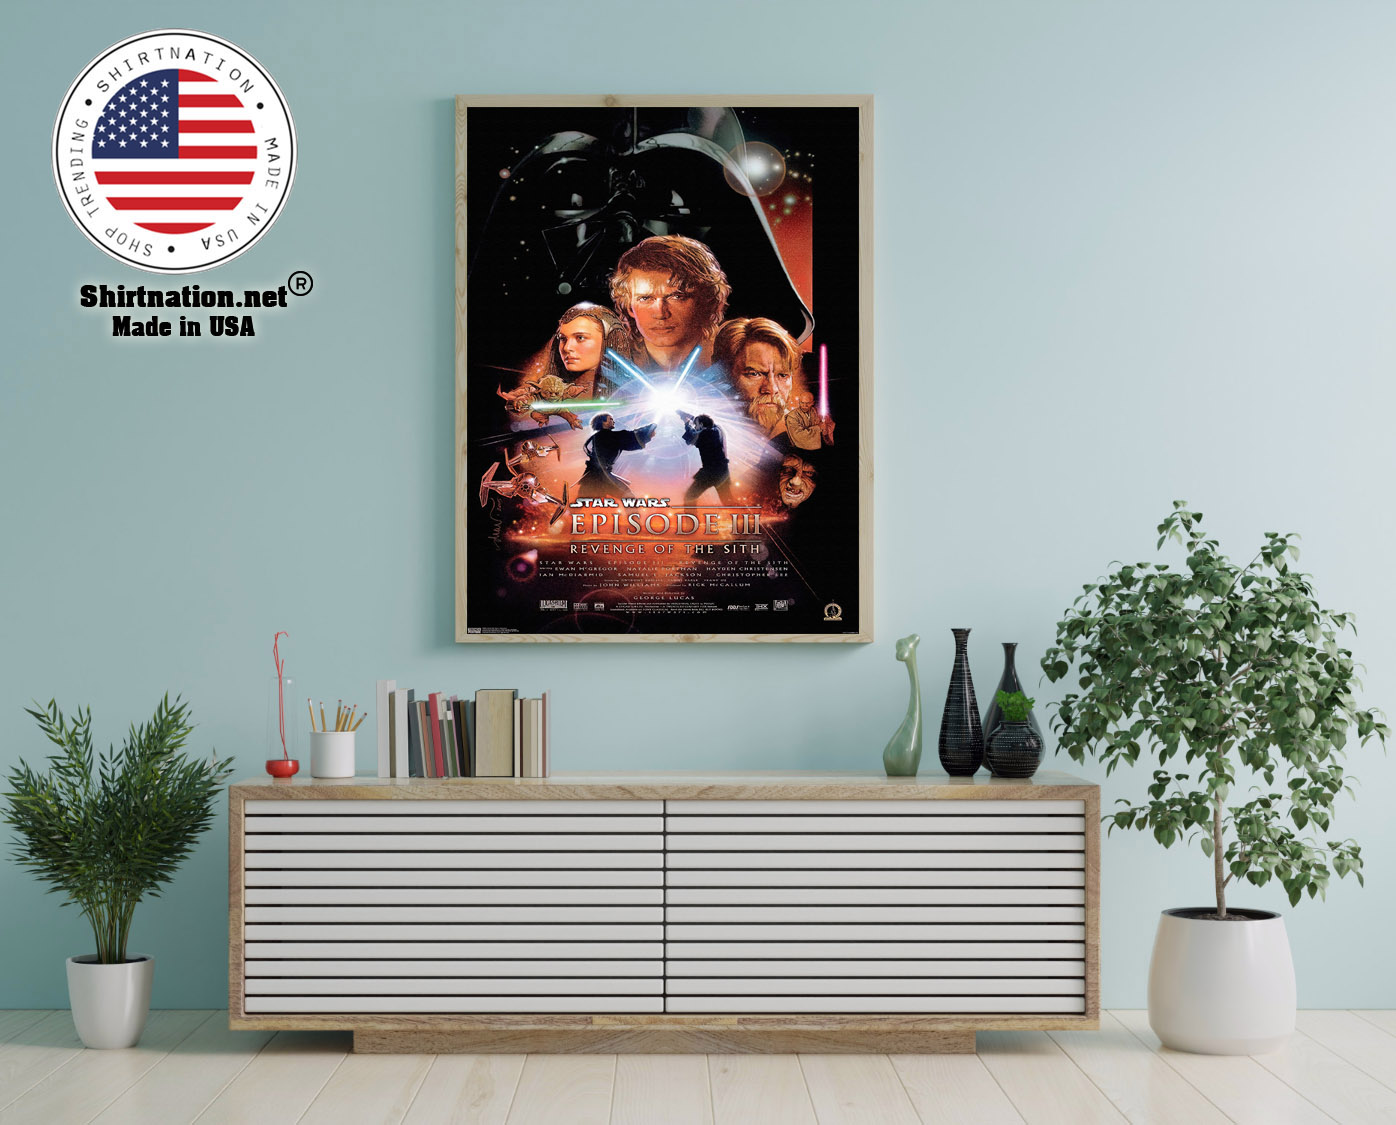 Star wars revenge of the sith poster 12